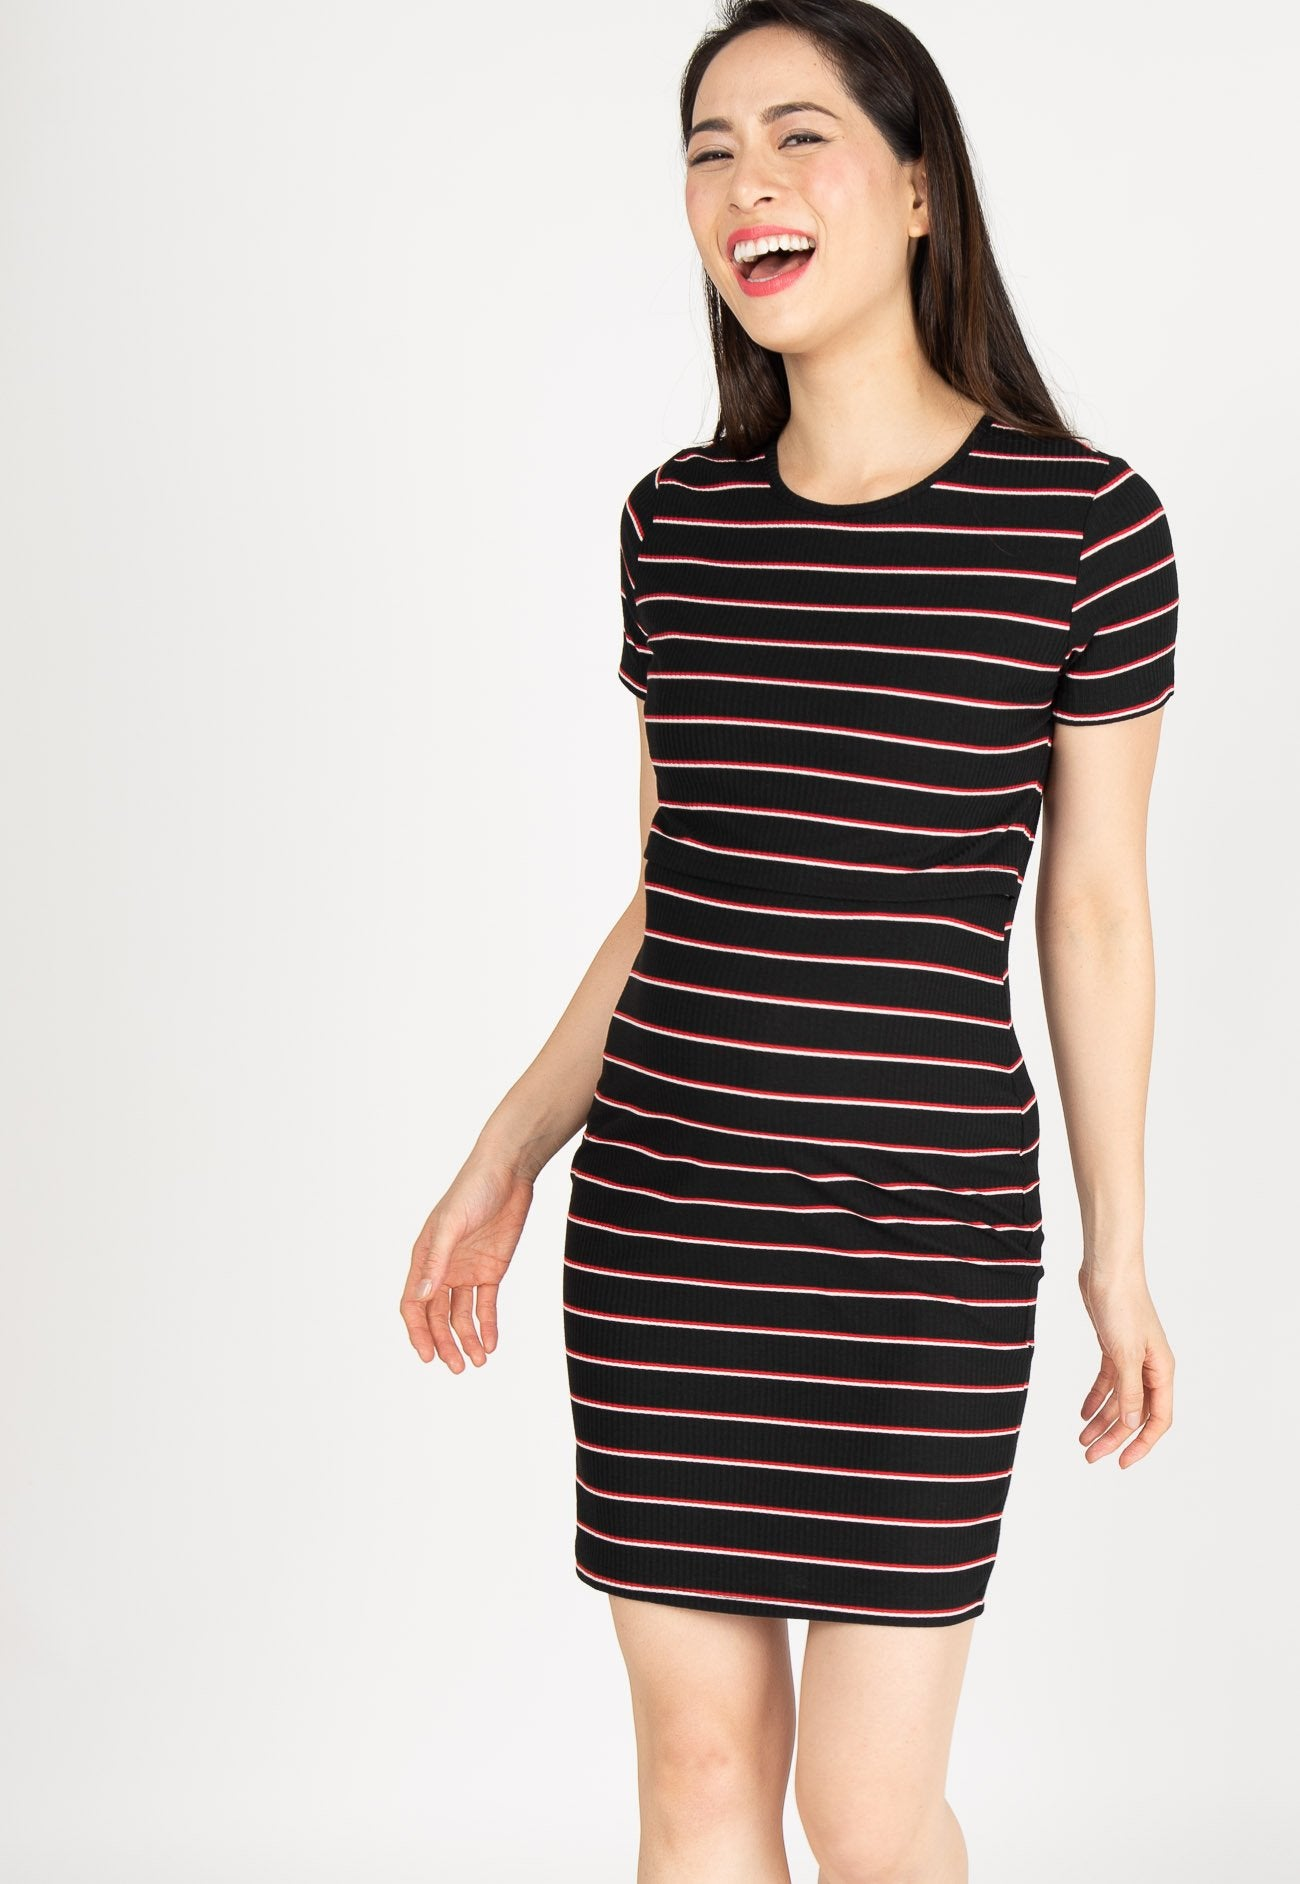 Sporty Stripes Nursing Dress in Black